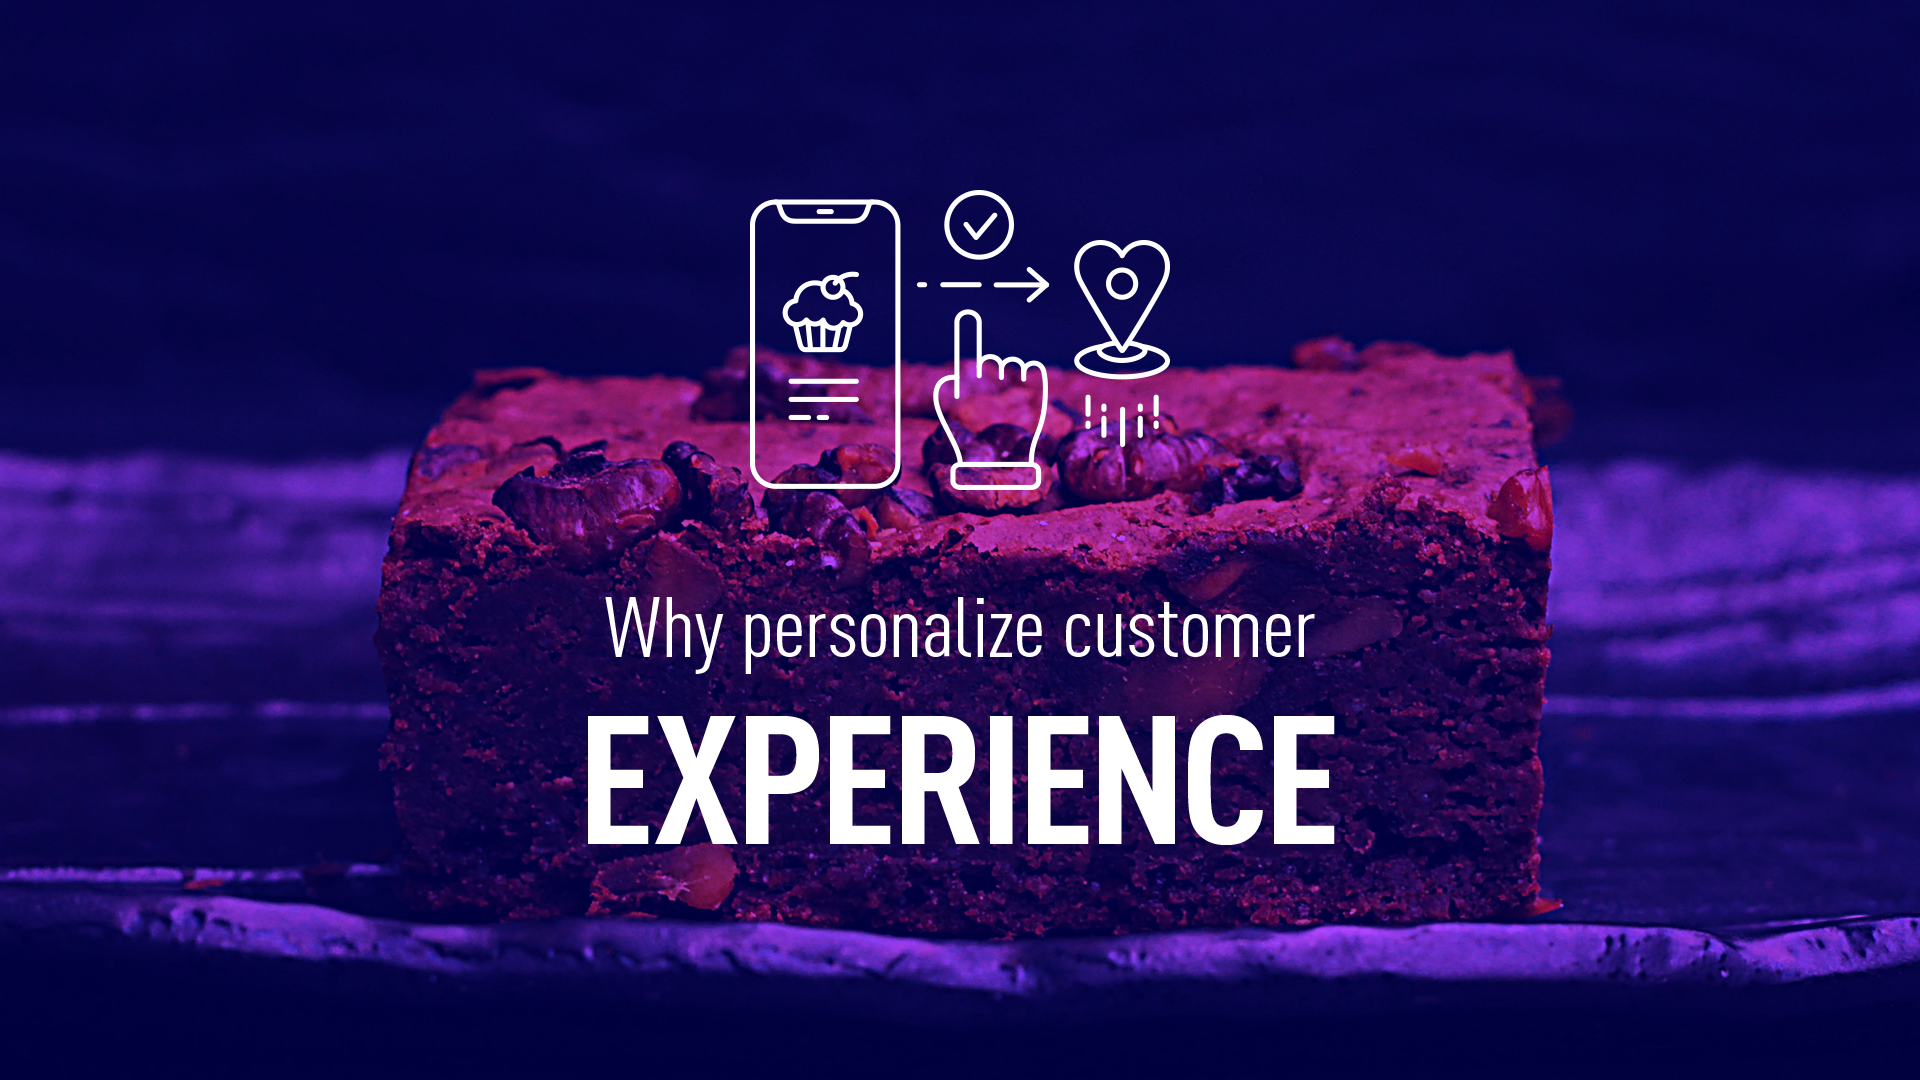 Why personalize customer experience?